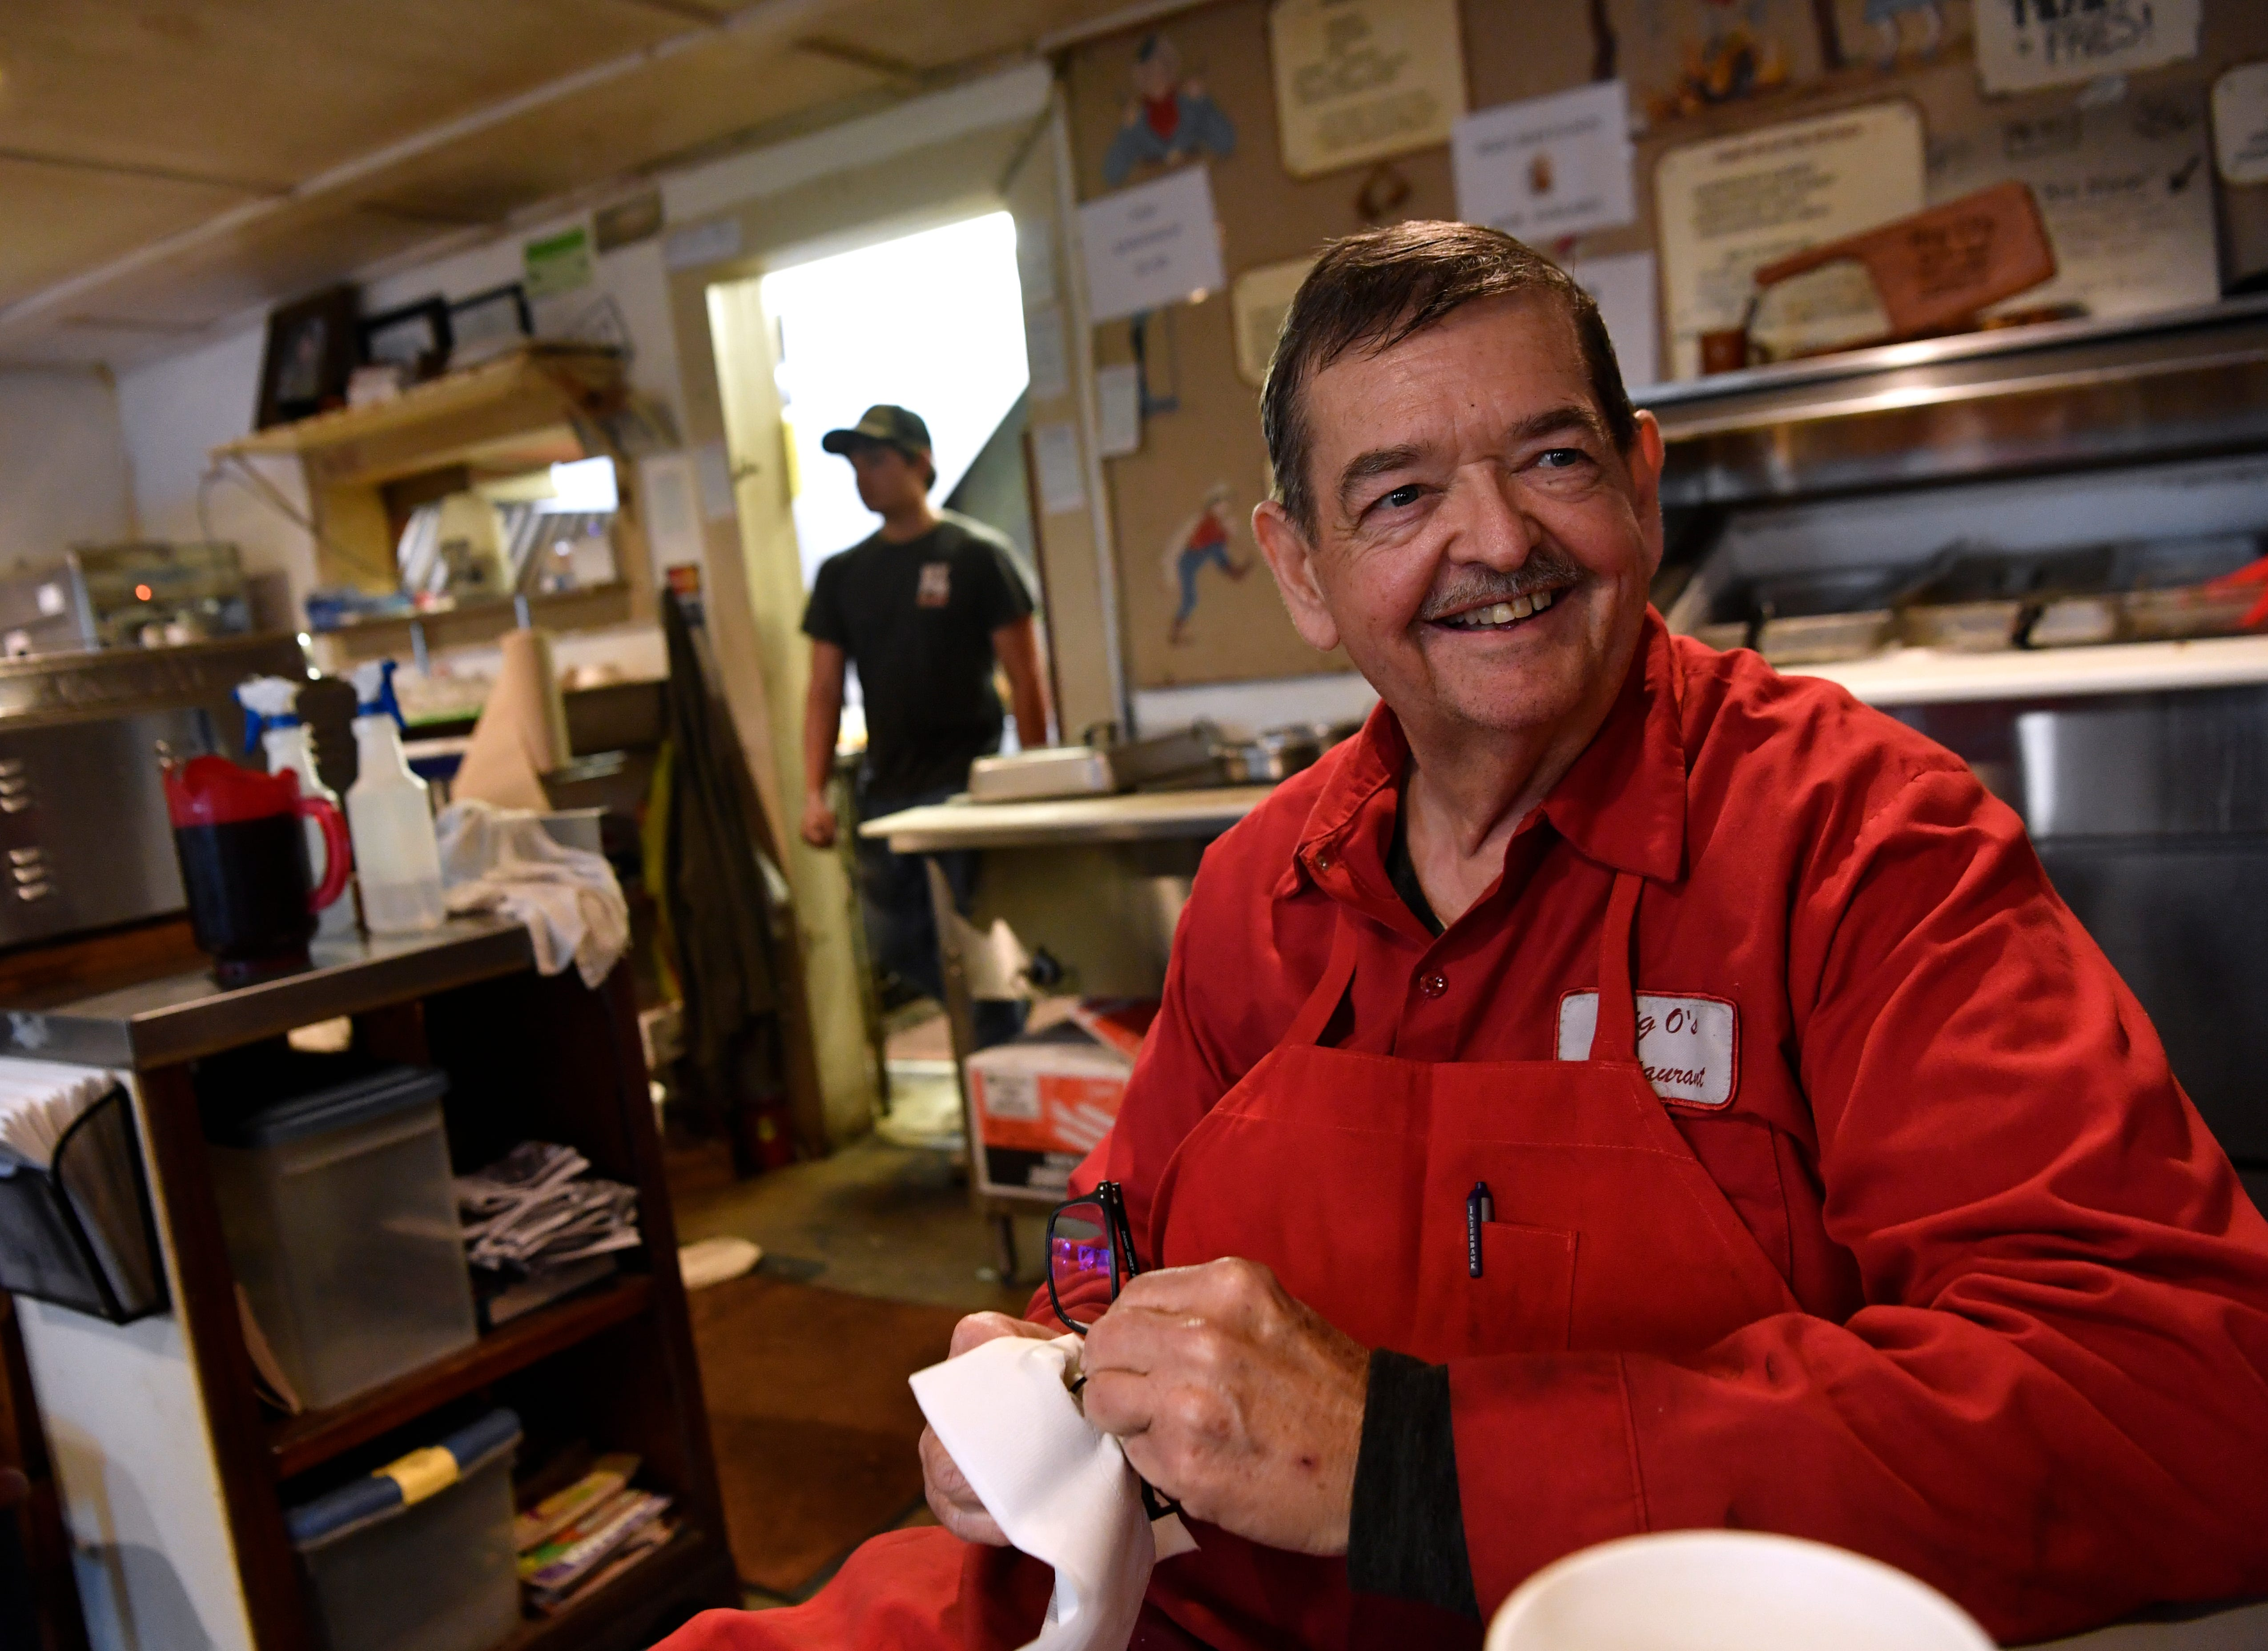 Lynn Owens, the own of Big O's Restaurant in Valera, sits down for a few minutes during a busy Friday last week. He said he is honored that another restaurant, Rancho Pizzeria in Coleman, has created a pizza using his brisket